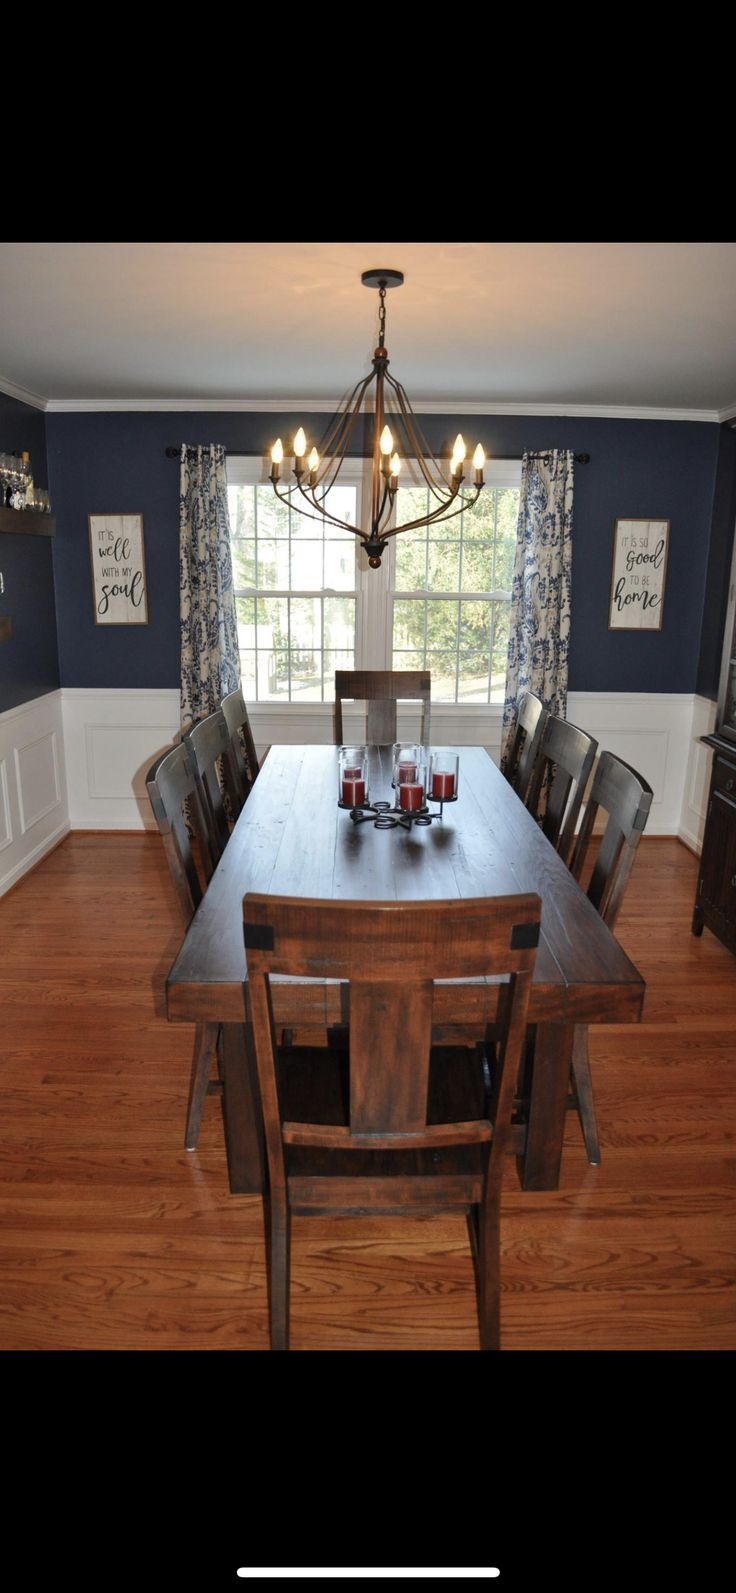 Pin by AML on Drexel Dining table, Home decor, Table